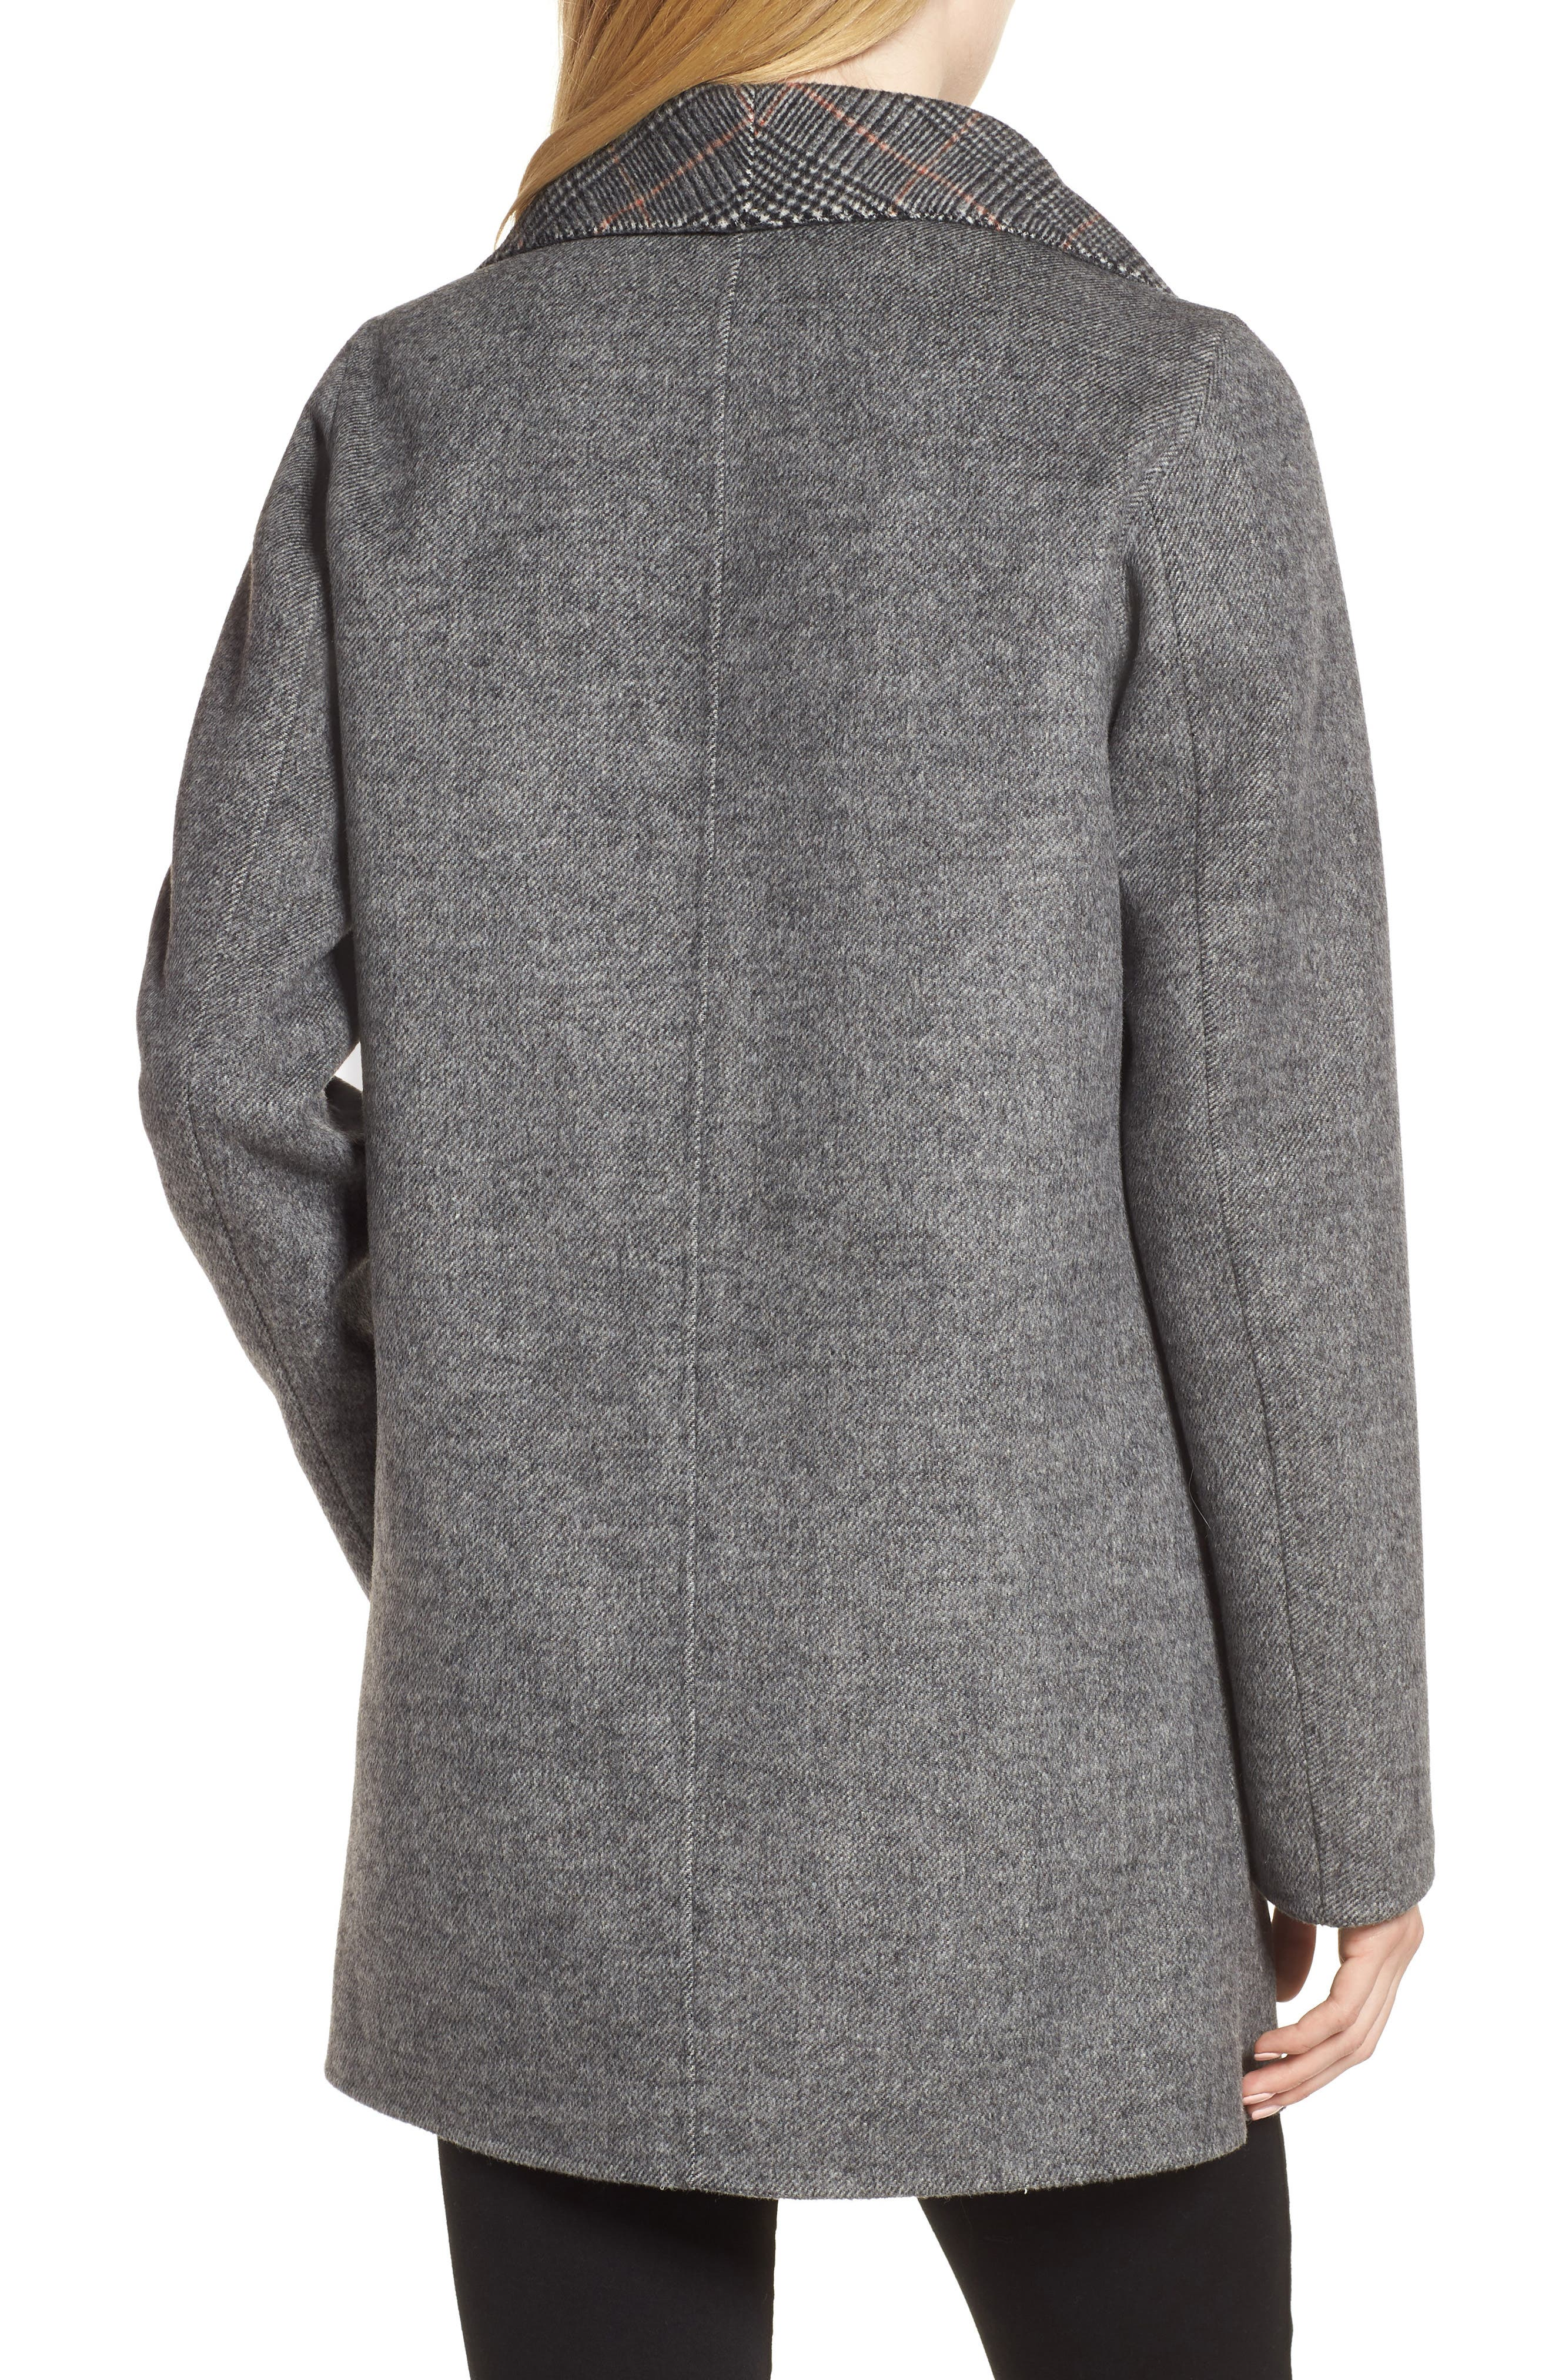 Nicky Double Face Wool Blend Oversize Coat,                             Alternate thumbnail 2, color,                             GREY COMBO TWILL/ PLAID